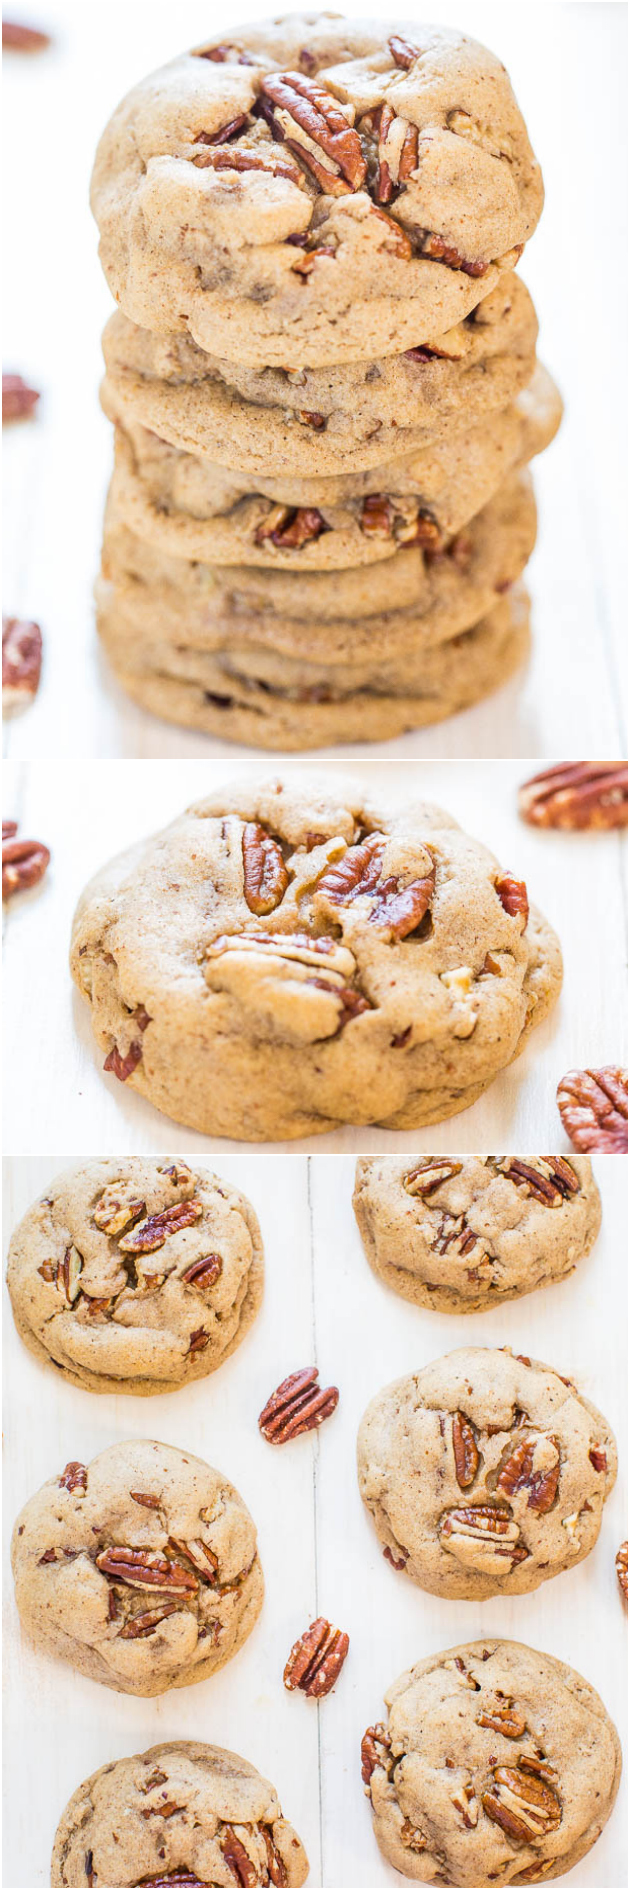 print recipe buttery pecan pumpkin spice cookies the cookies are